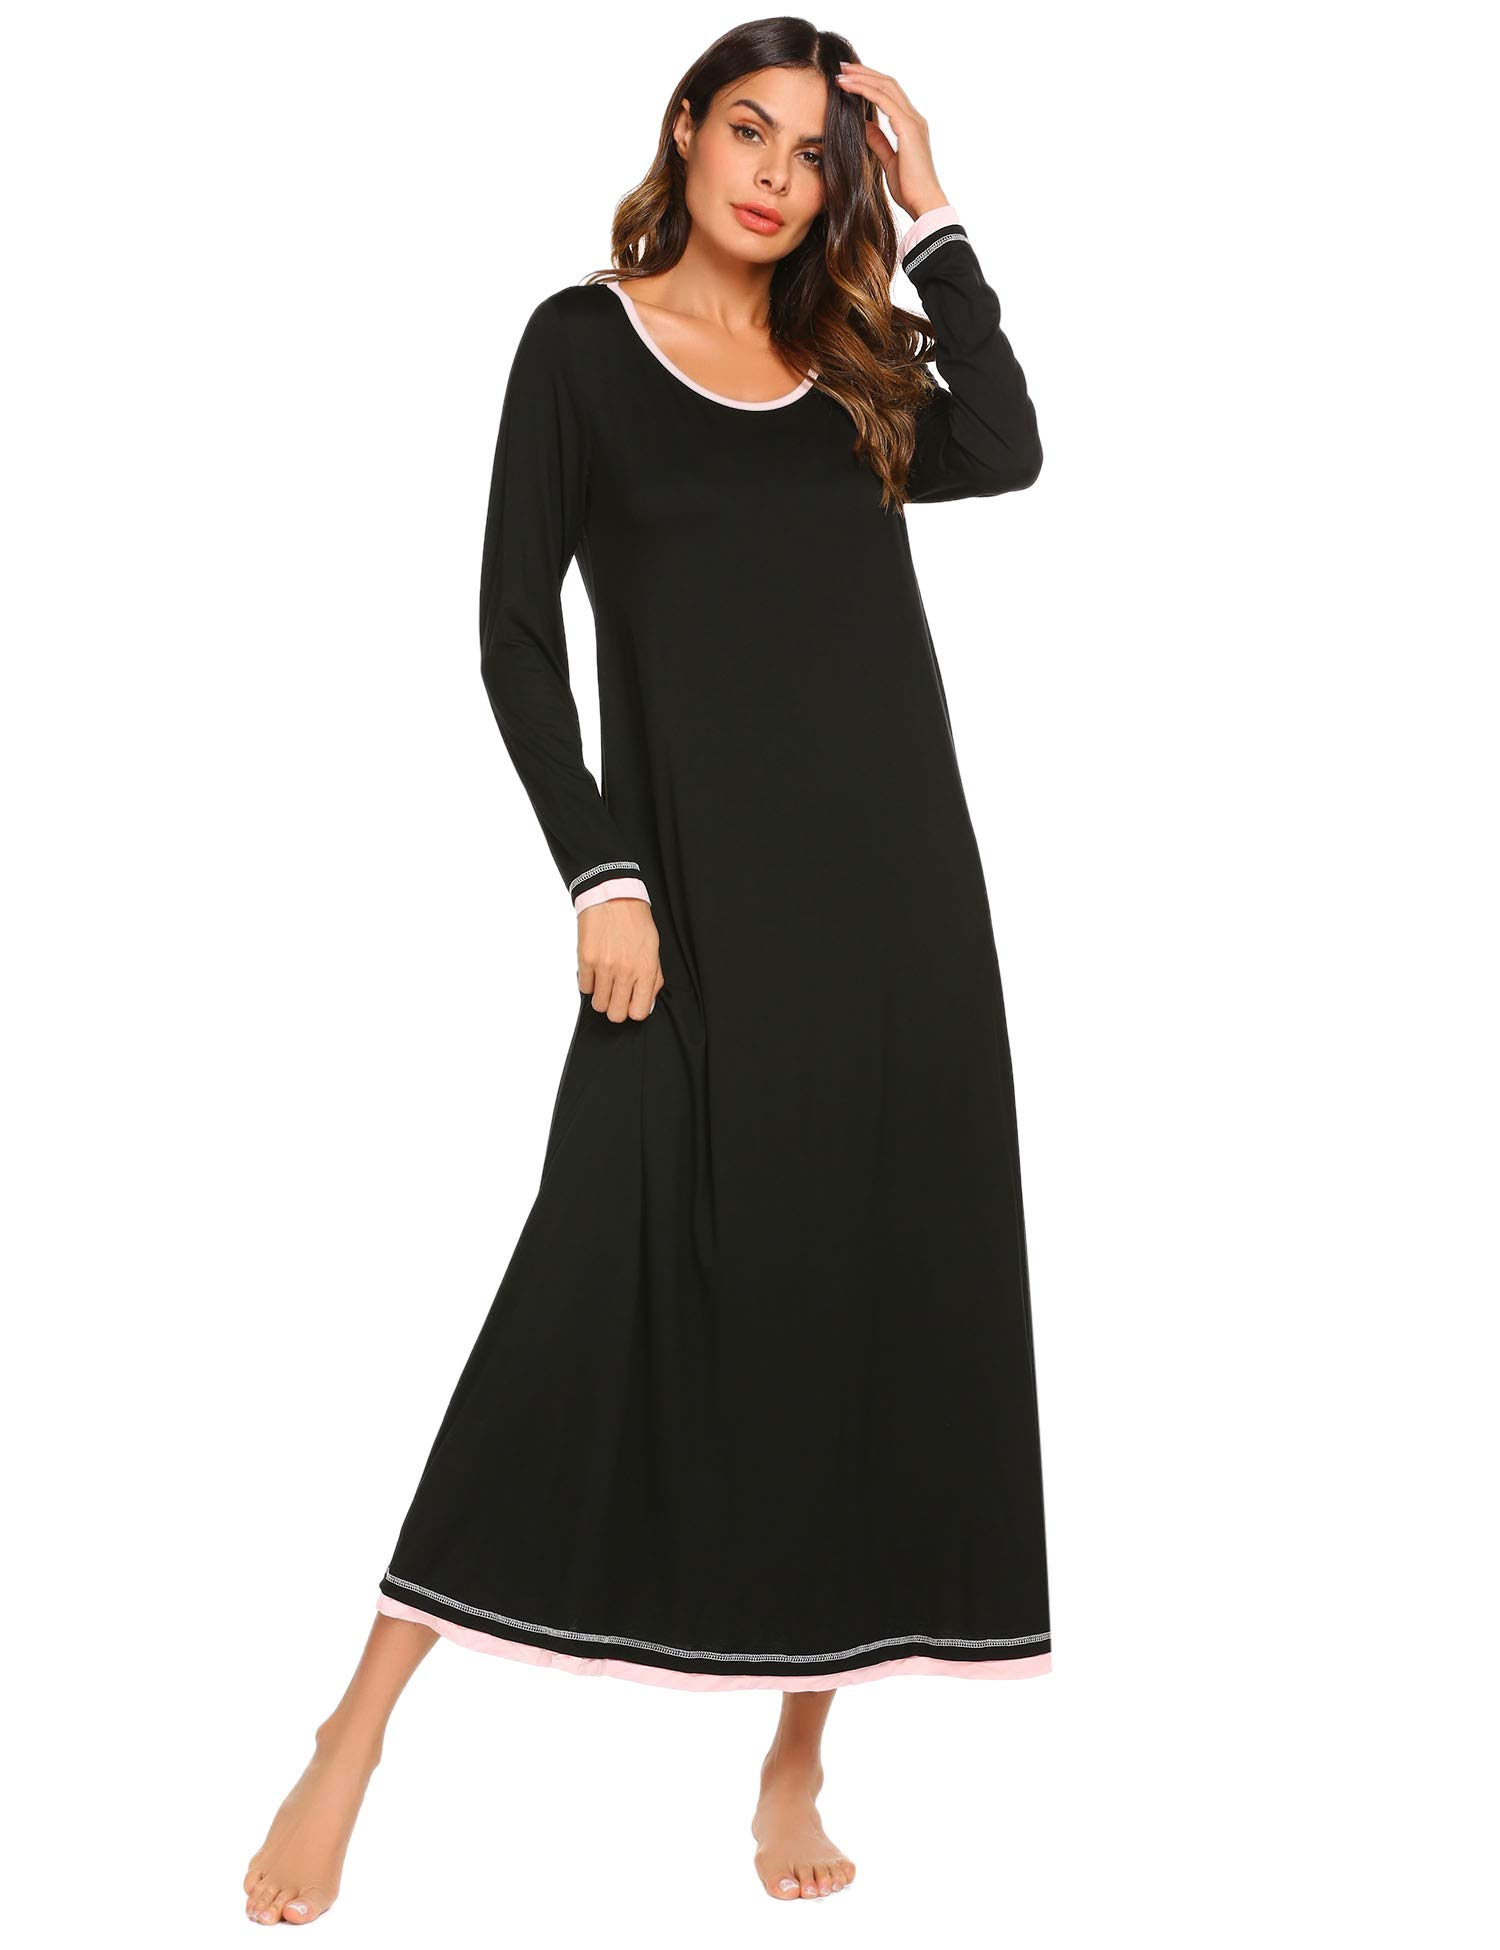 Ekouaer Plus Size Nightgown Women's Long Sleeve Nightshirt Long Sleepwear Gown (Black,XXL)